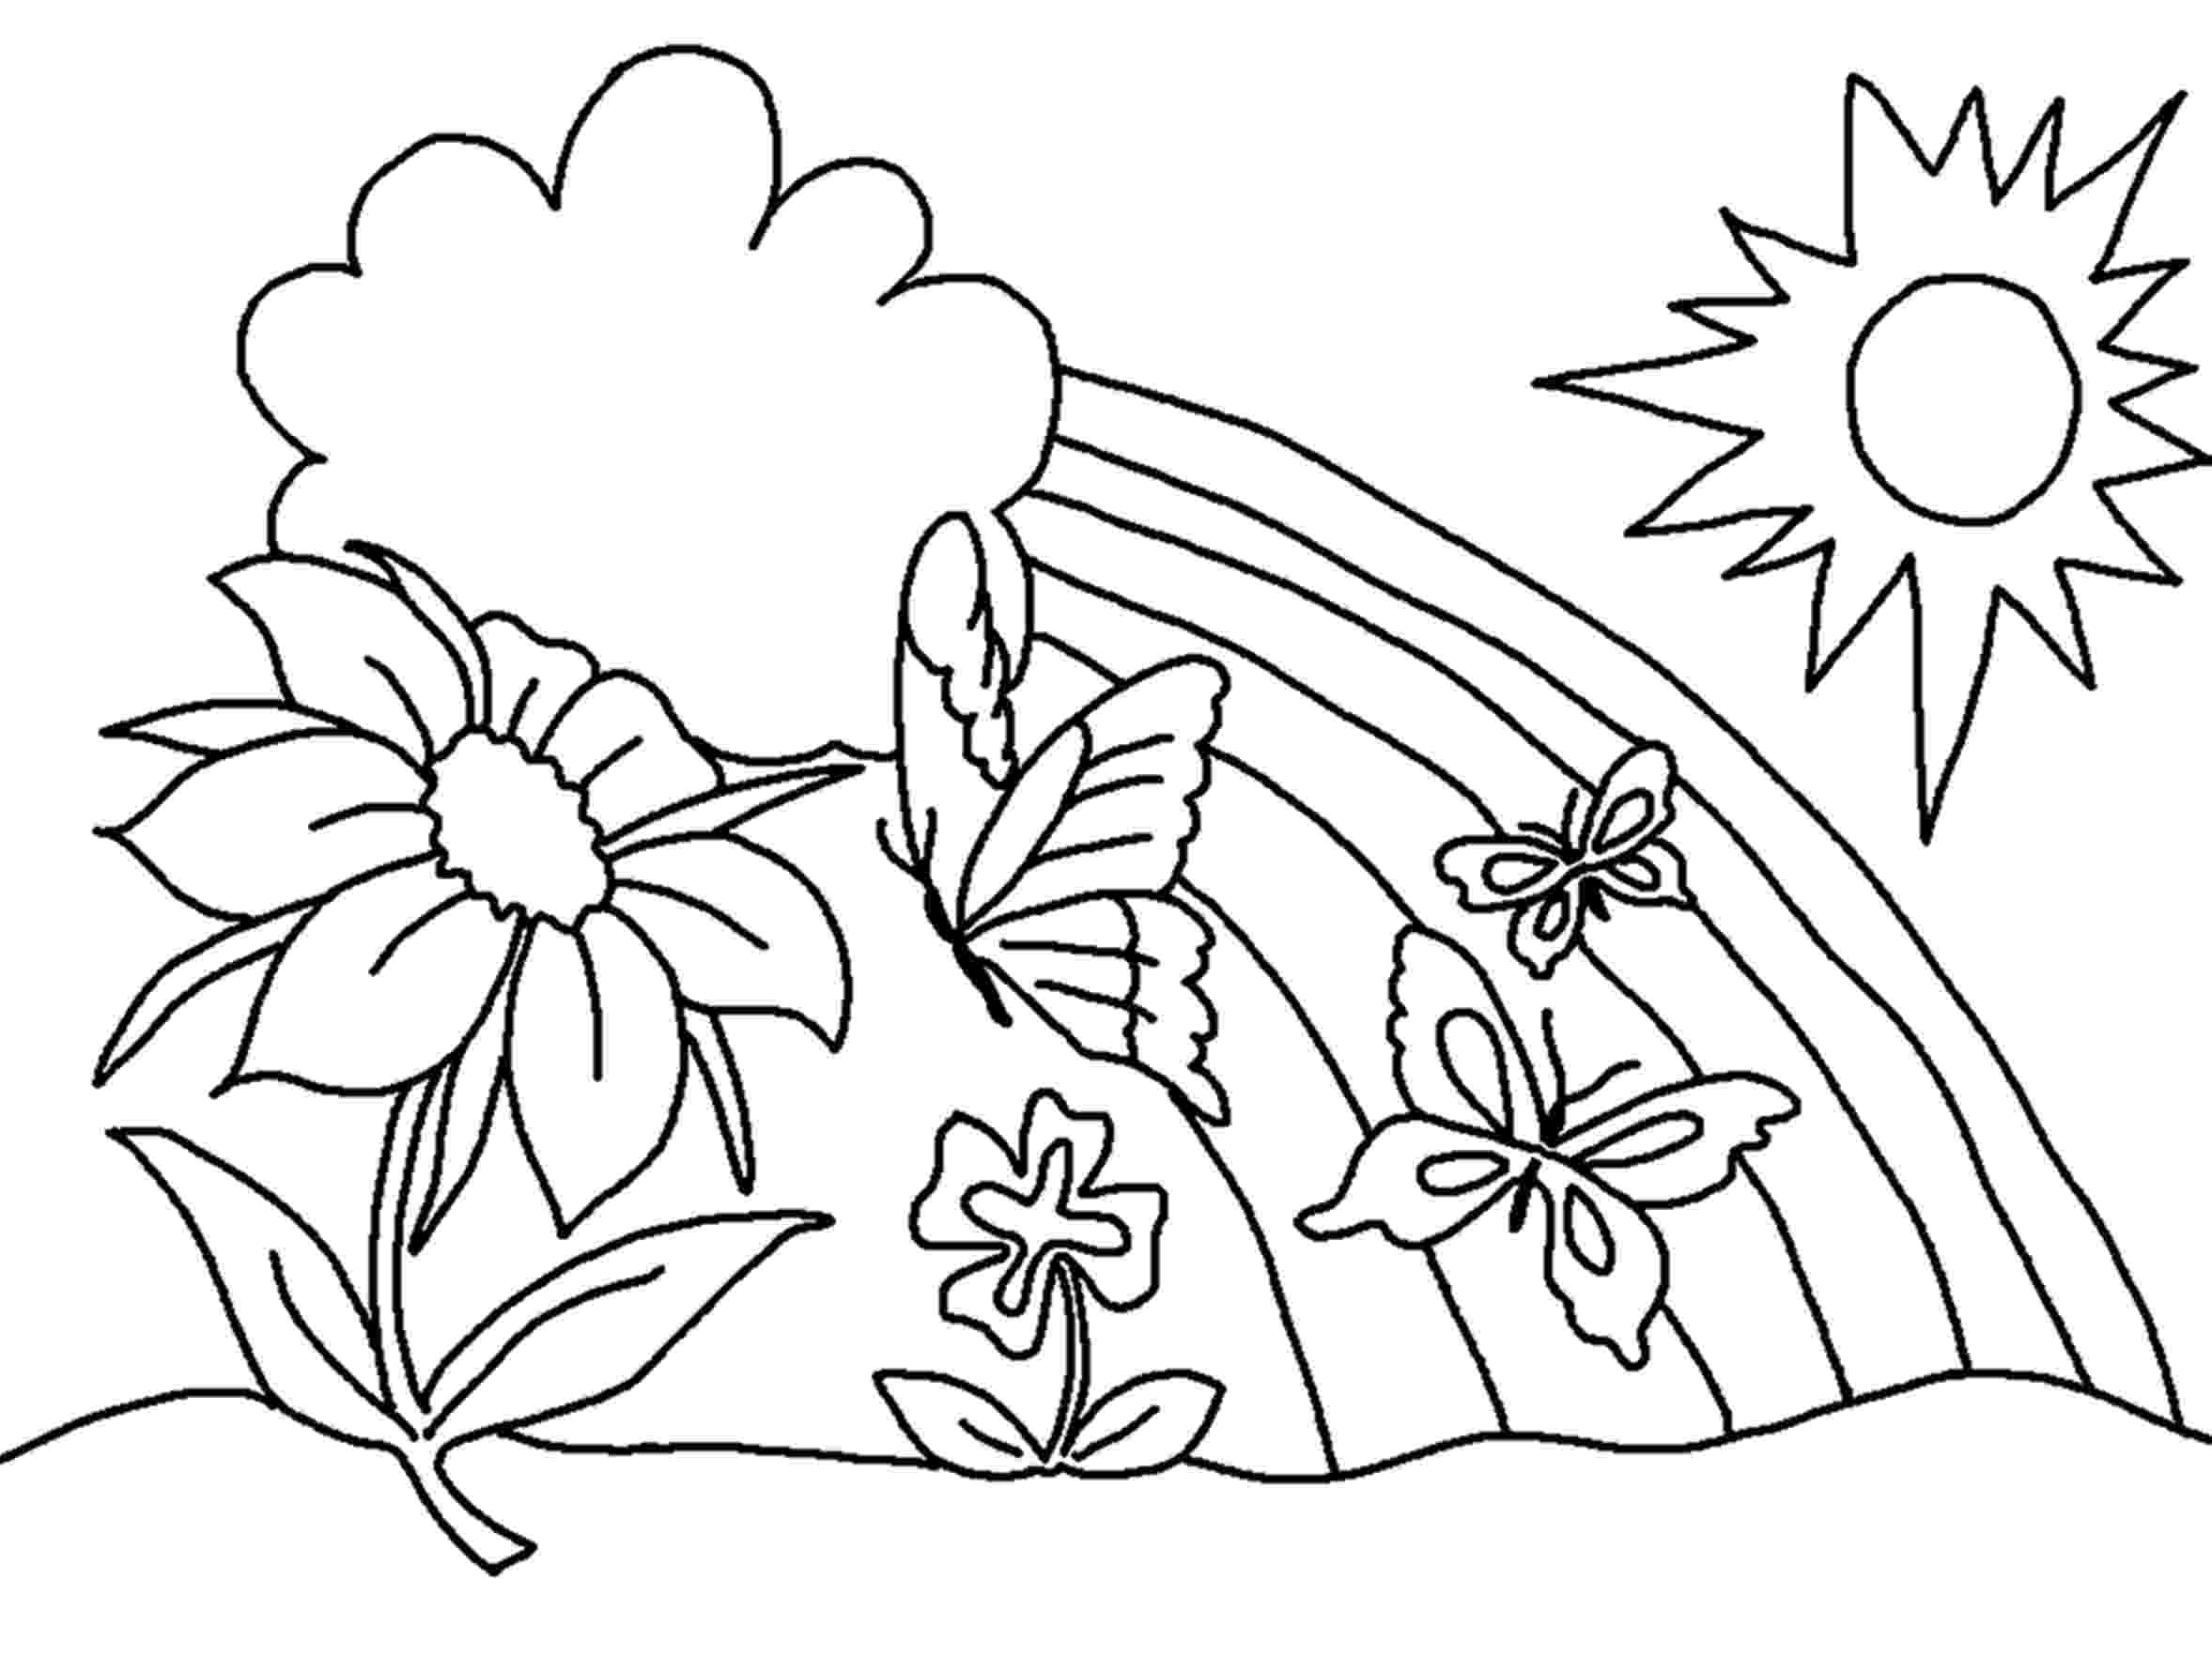 printable coloring pages plants plant coloring pages to download and print for free pages printable plants coloring